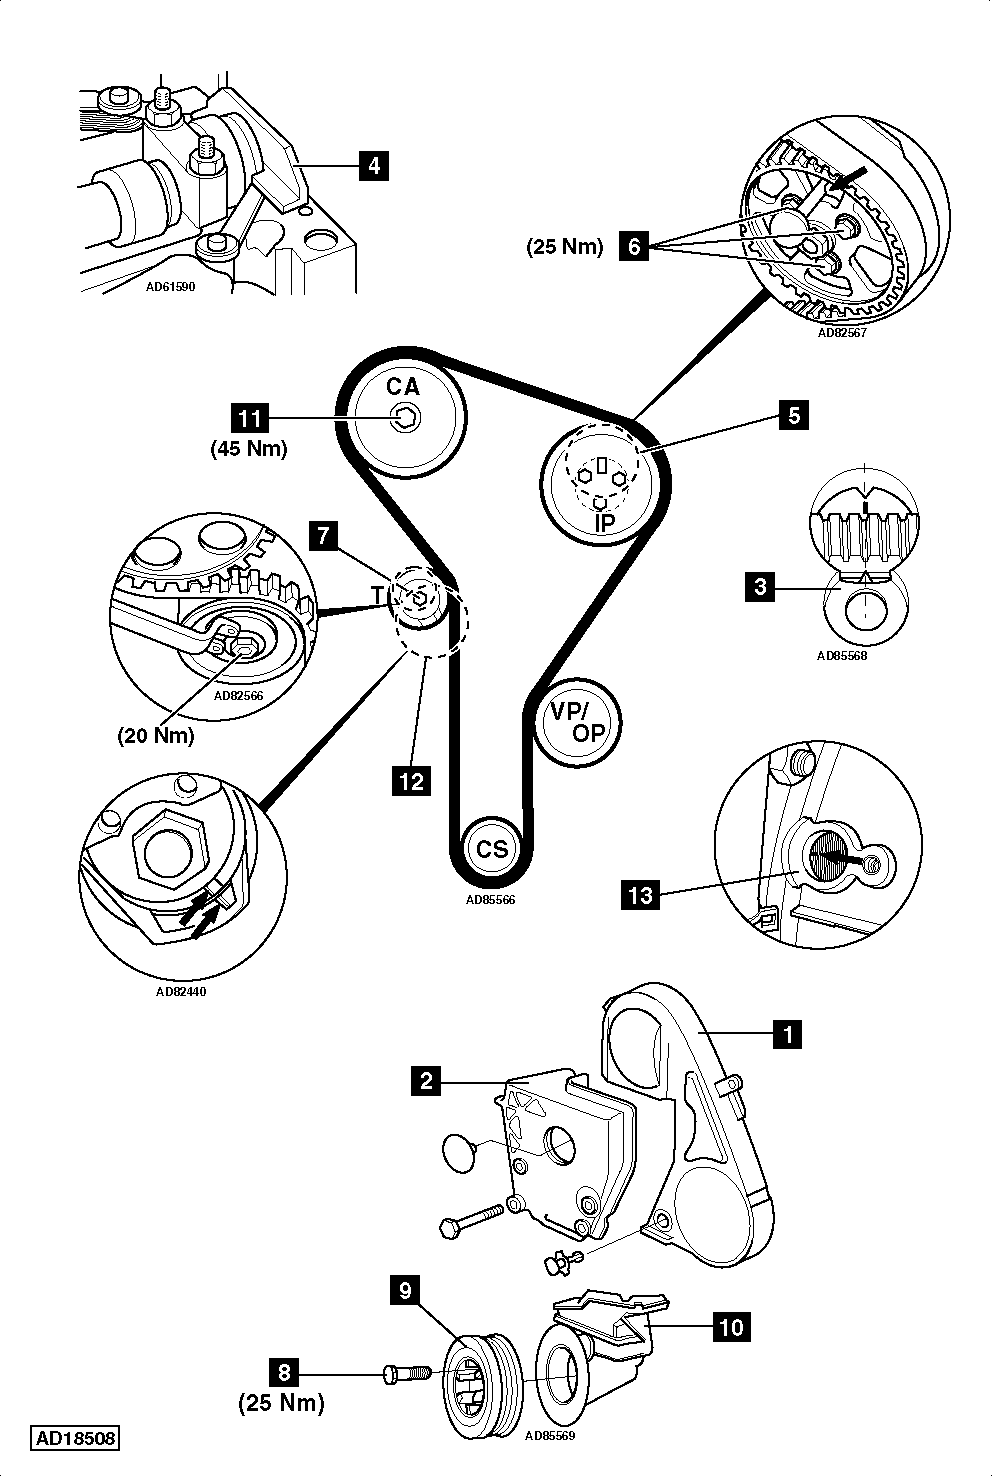 P 0900c152801bf5b9 furthermore Kia Sportage Air Conditioning Wiring Diagram additionally 2003 Jetta 1 8t Engine Diagram also P 0900c152801becd4 furthermore Vw Tdi Timing Belt Diagram. on 1999 vw golf electrical wiring diagram